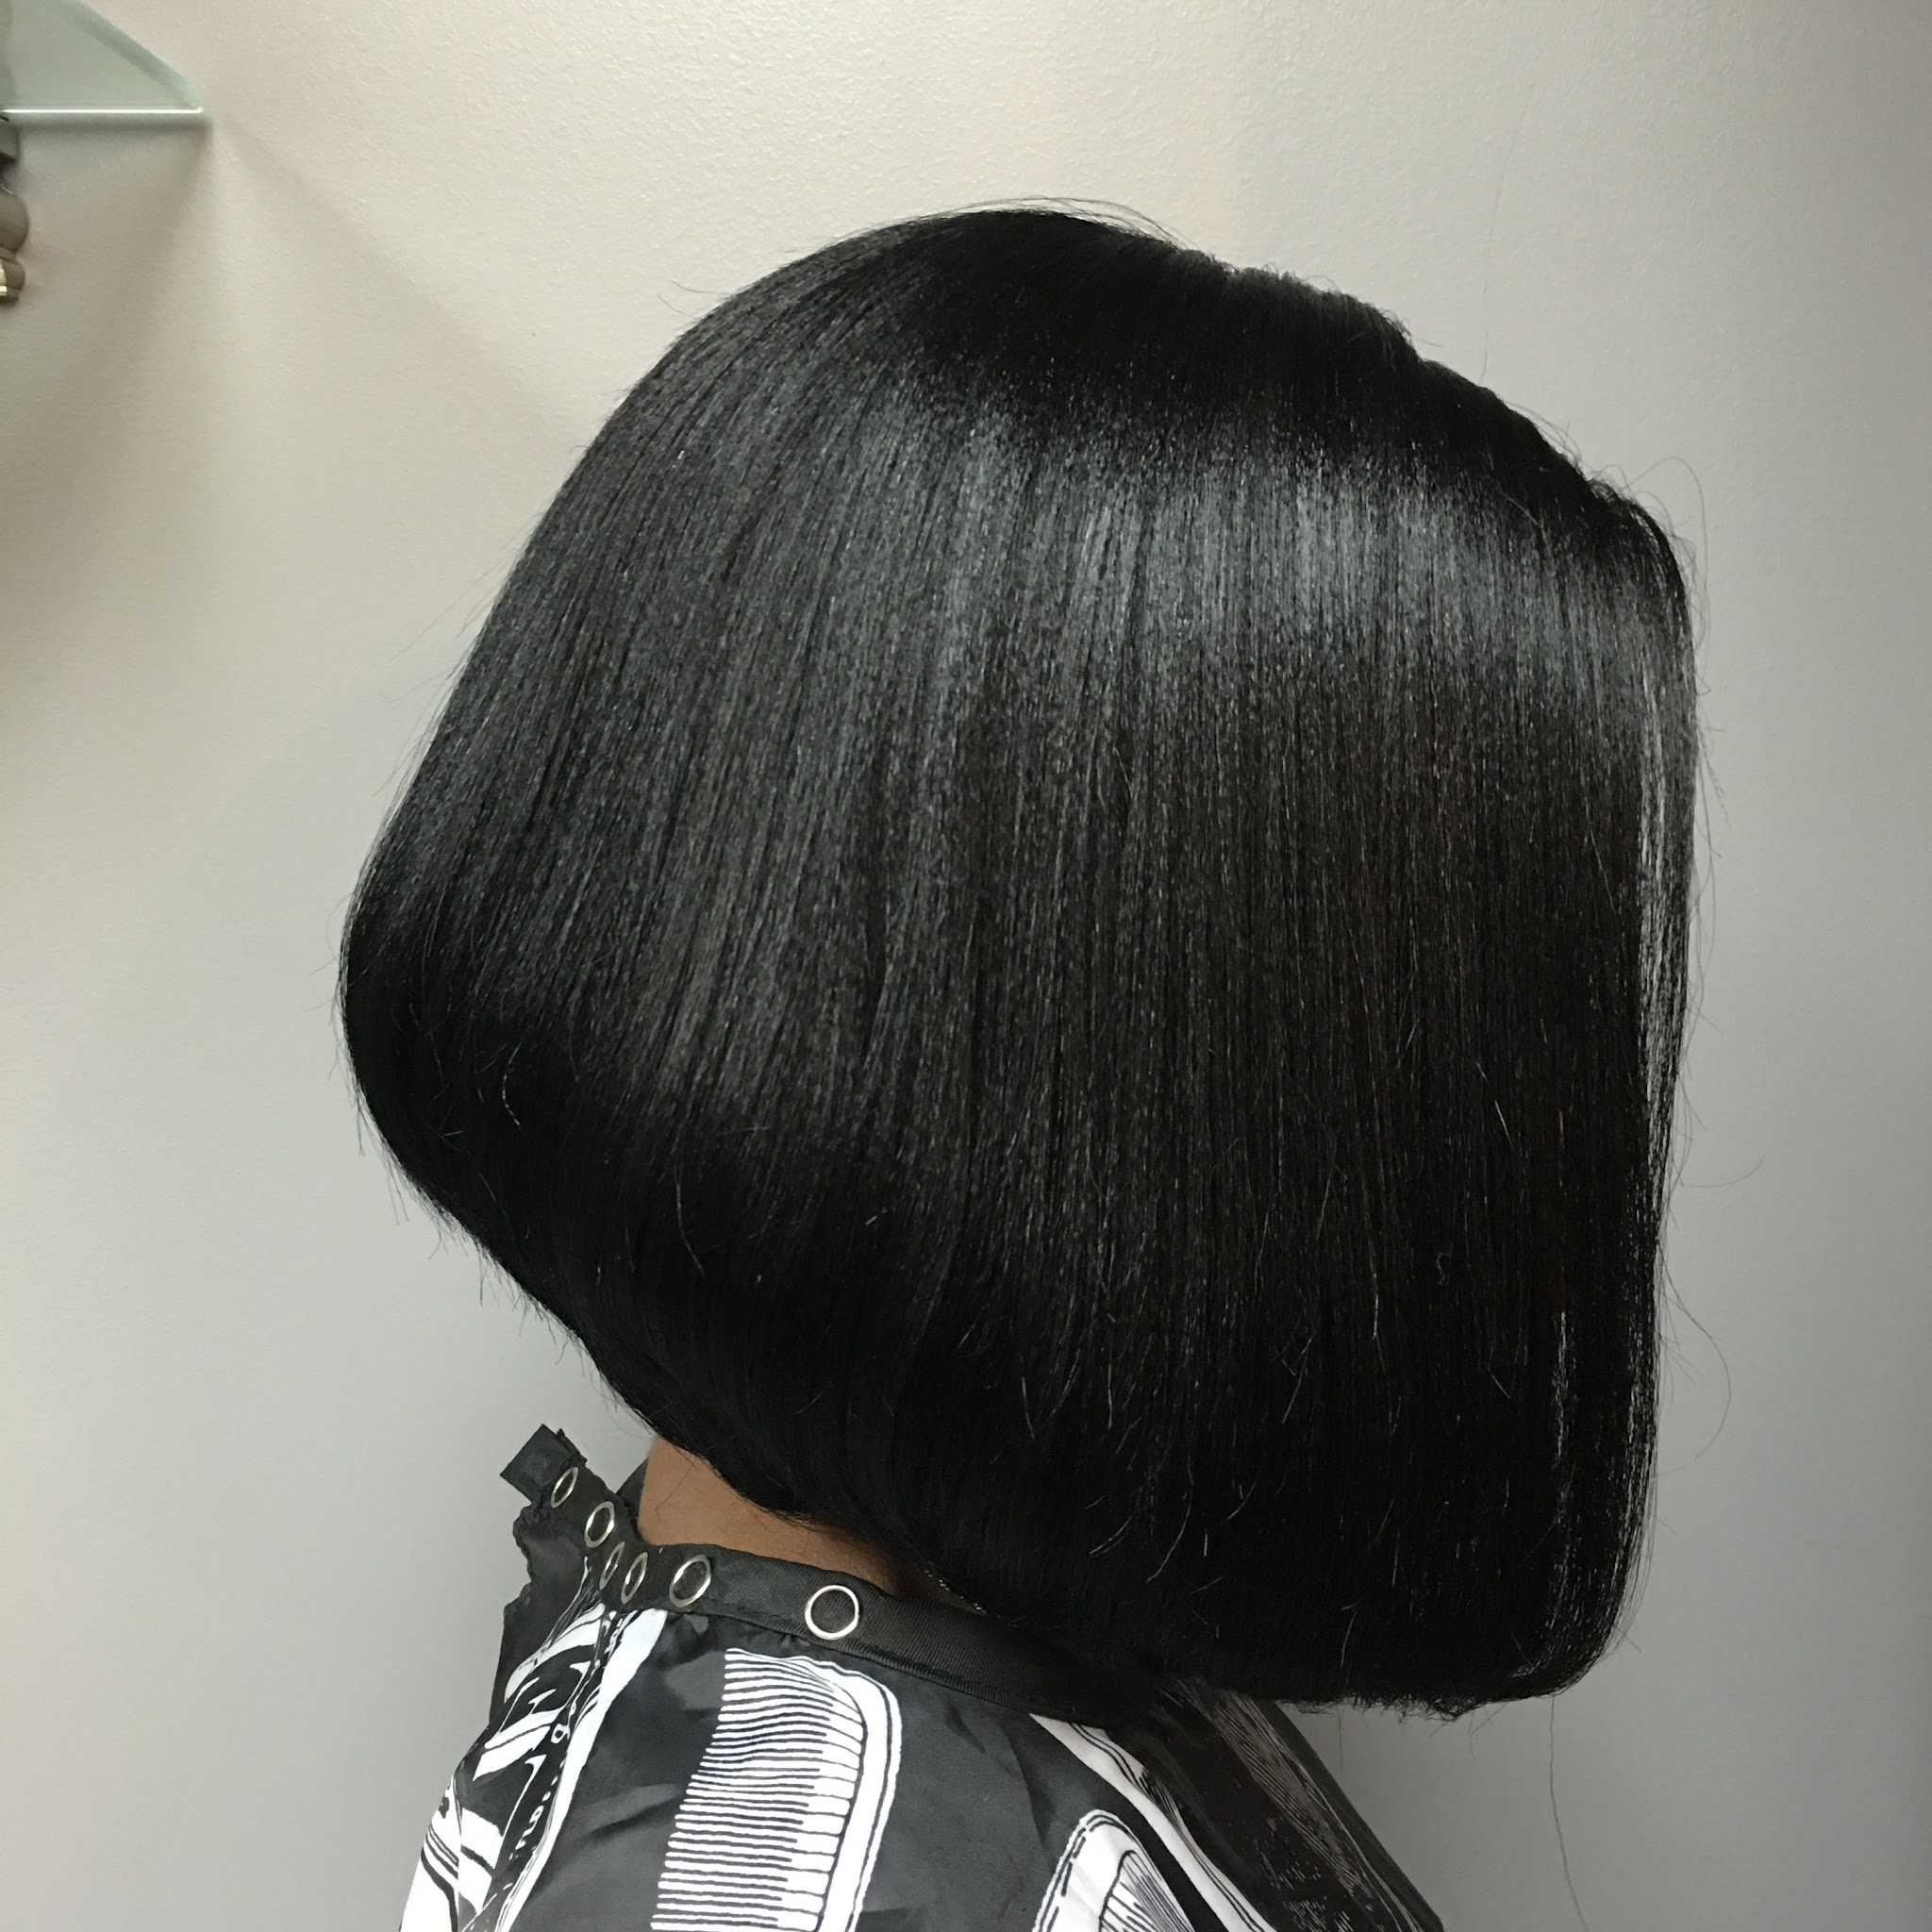 Wig Washed   Colored   Styled